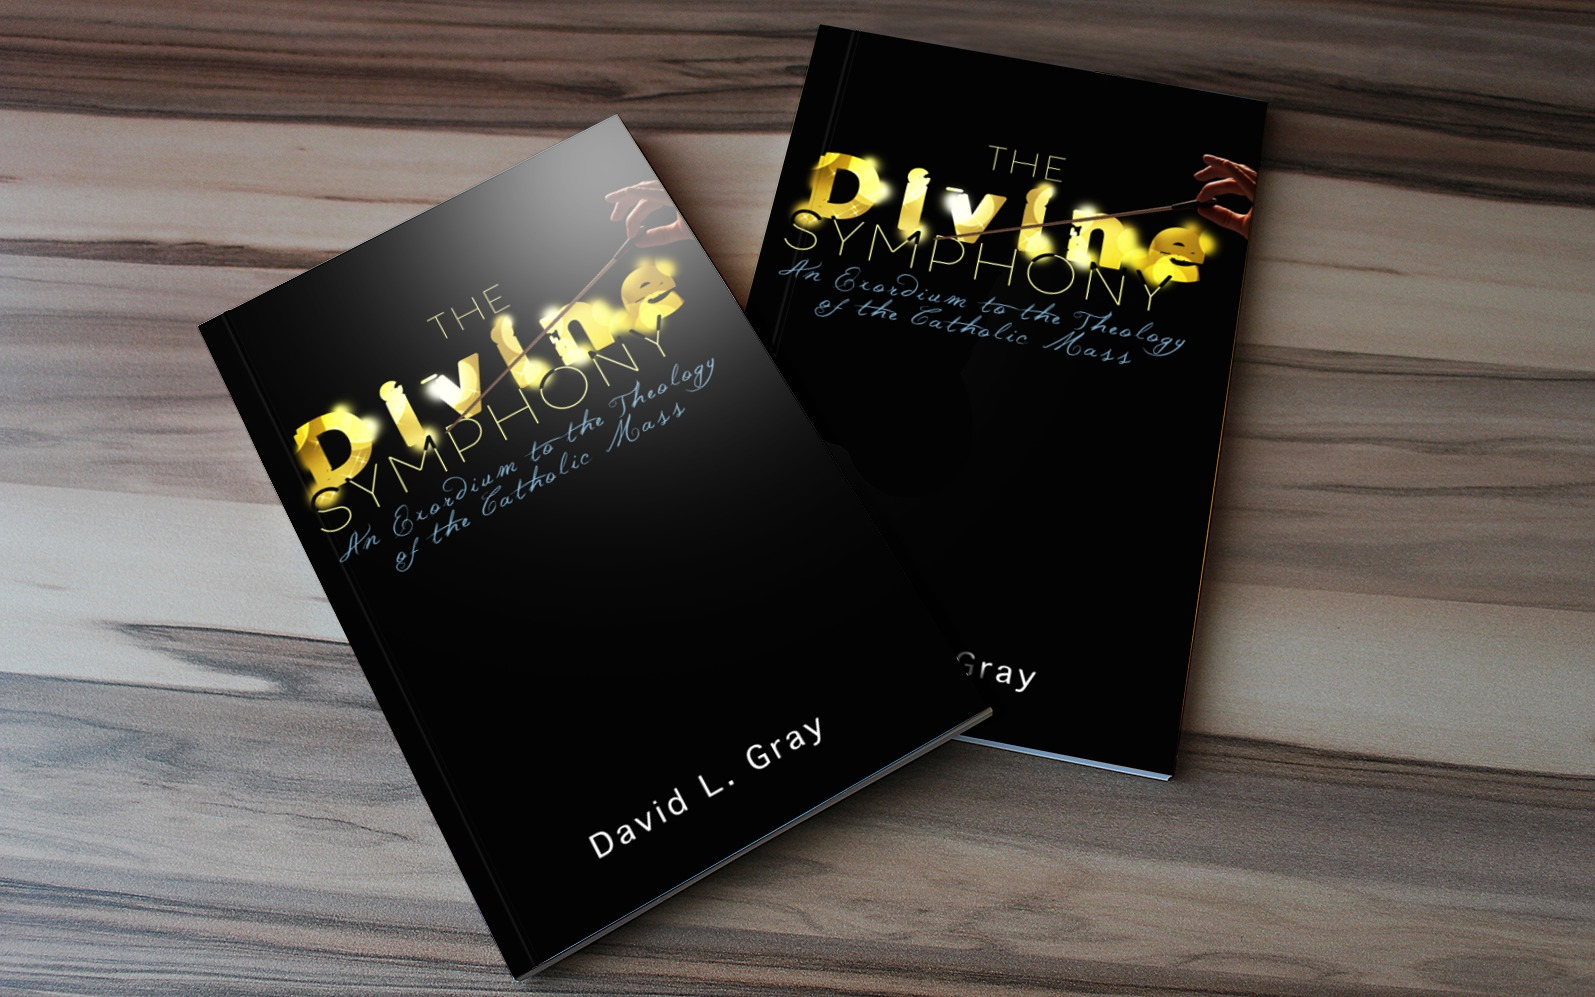 Interview with Author David L. Gray (The Divine Symphony)